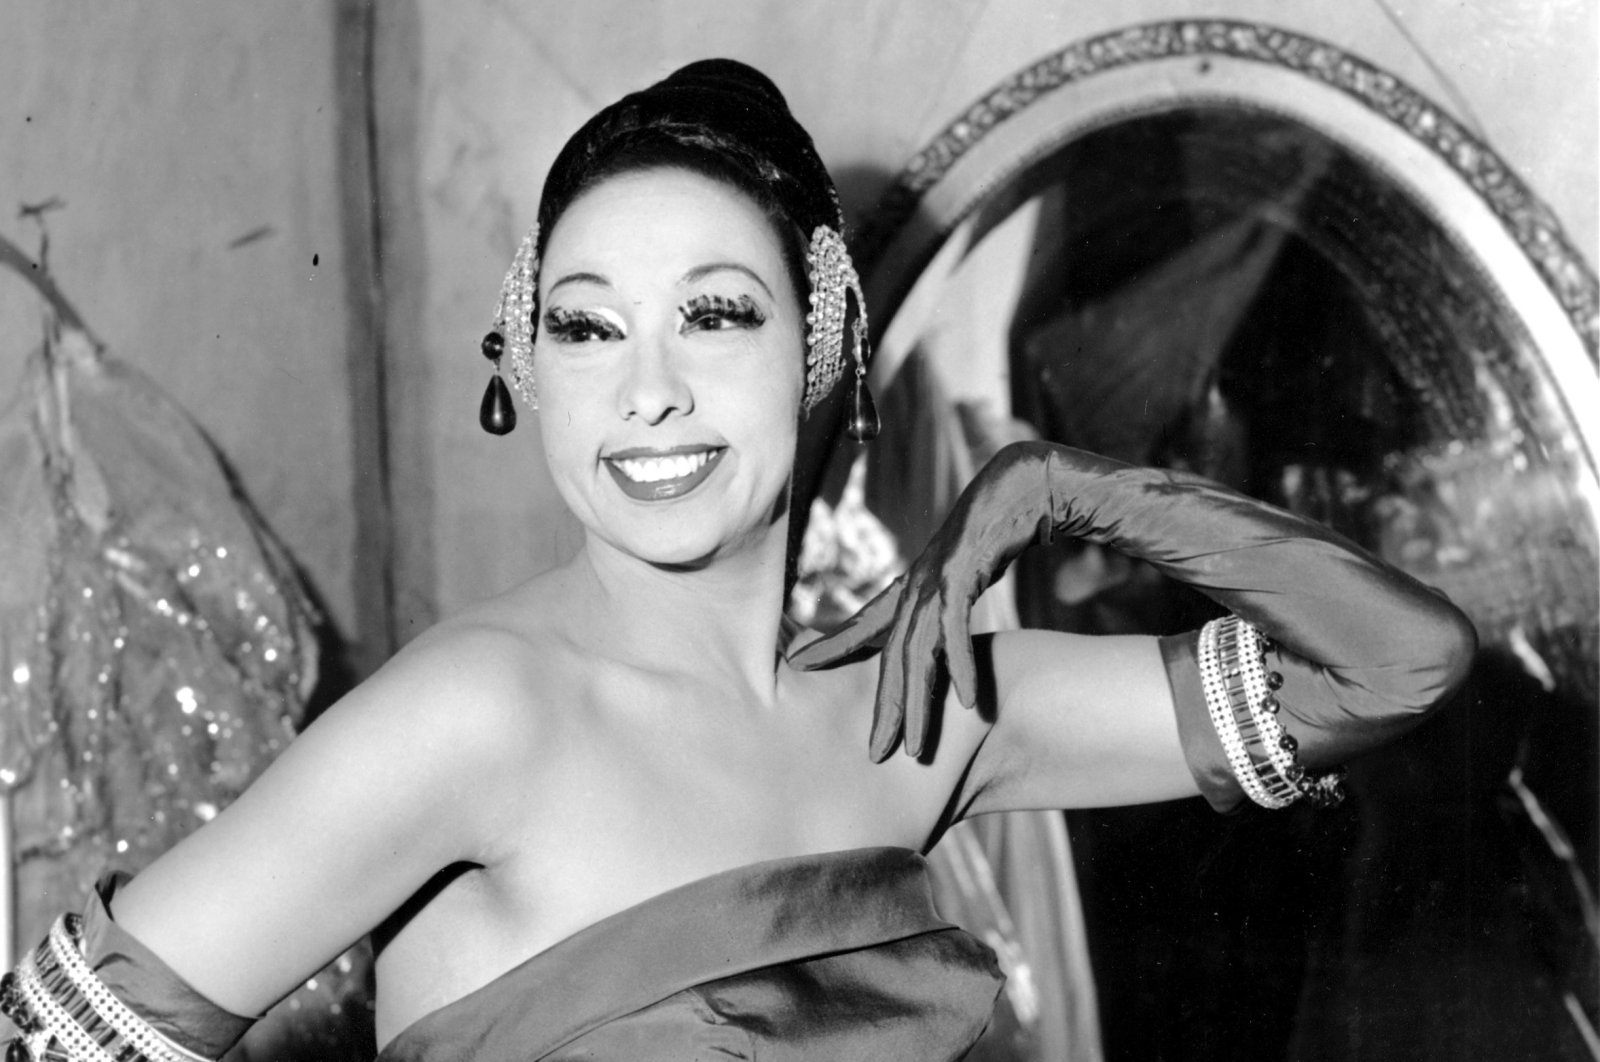 Singer Josephine Baker poses in her dressing room at the Strand Theater in New York City, U.S., March 6, 1961. (AP Photo)